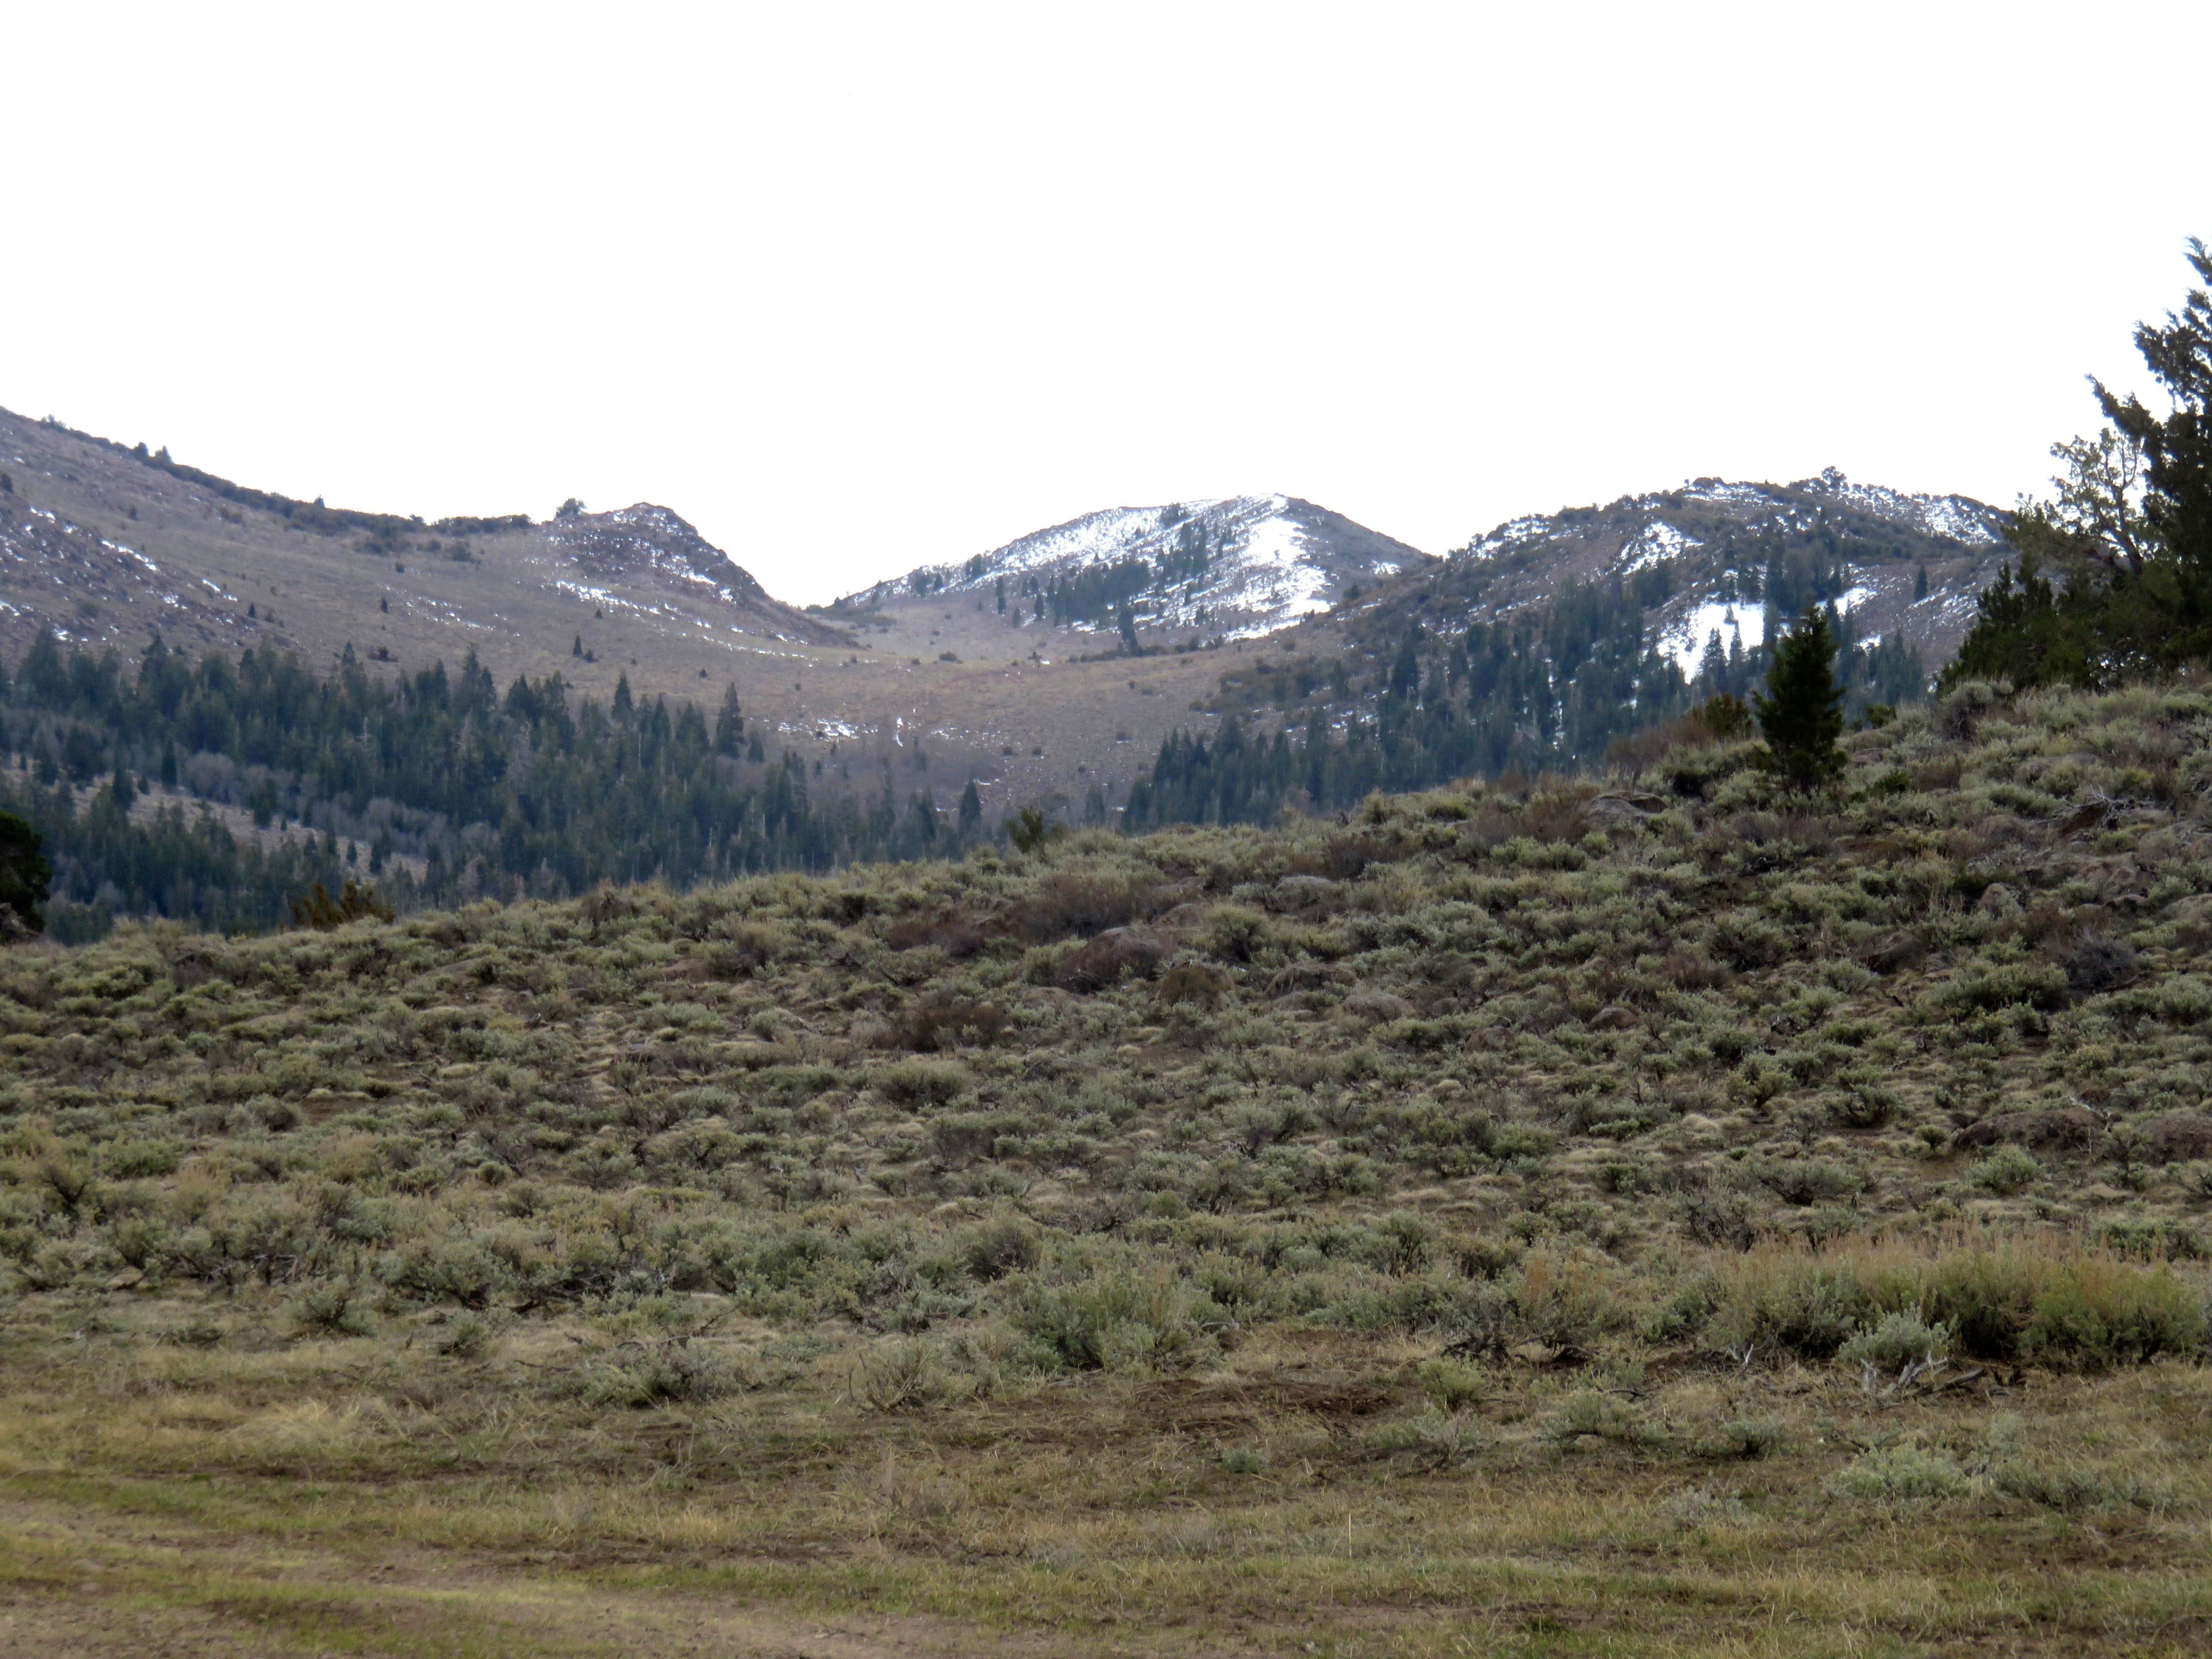 South Monitor Pass Peak – Peak 8930